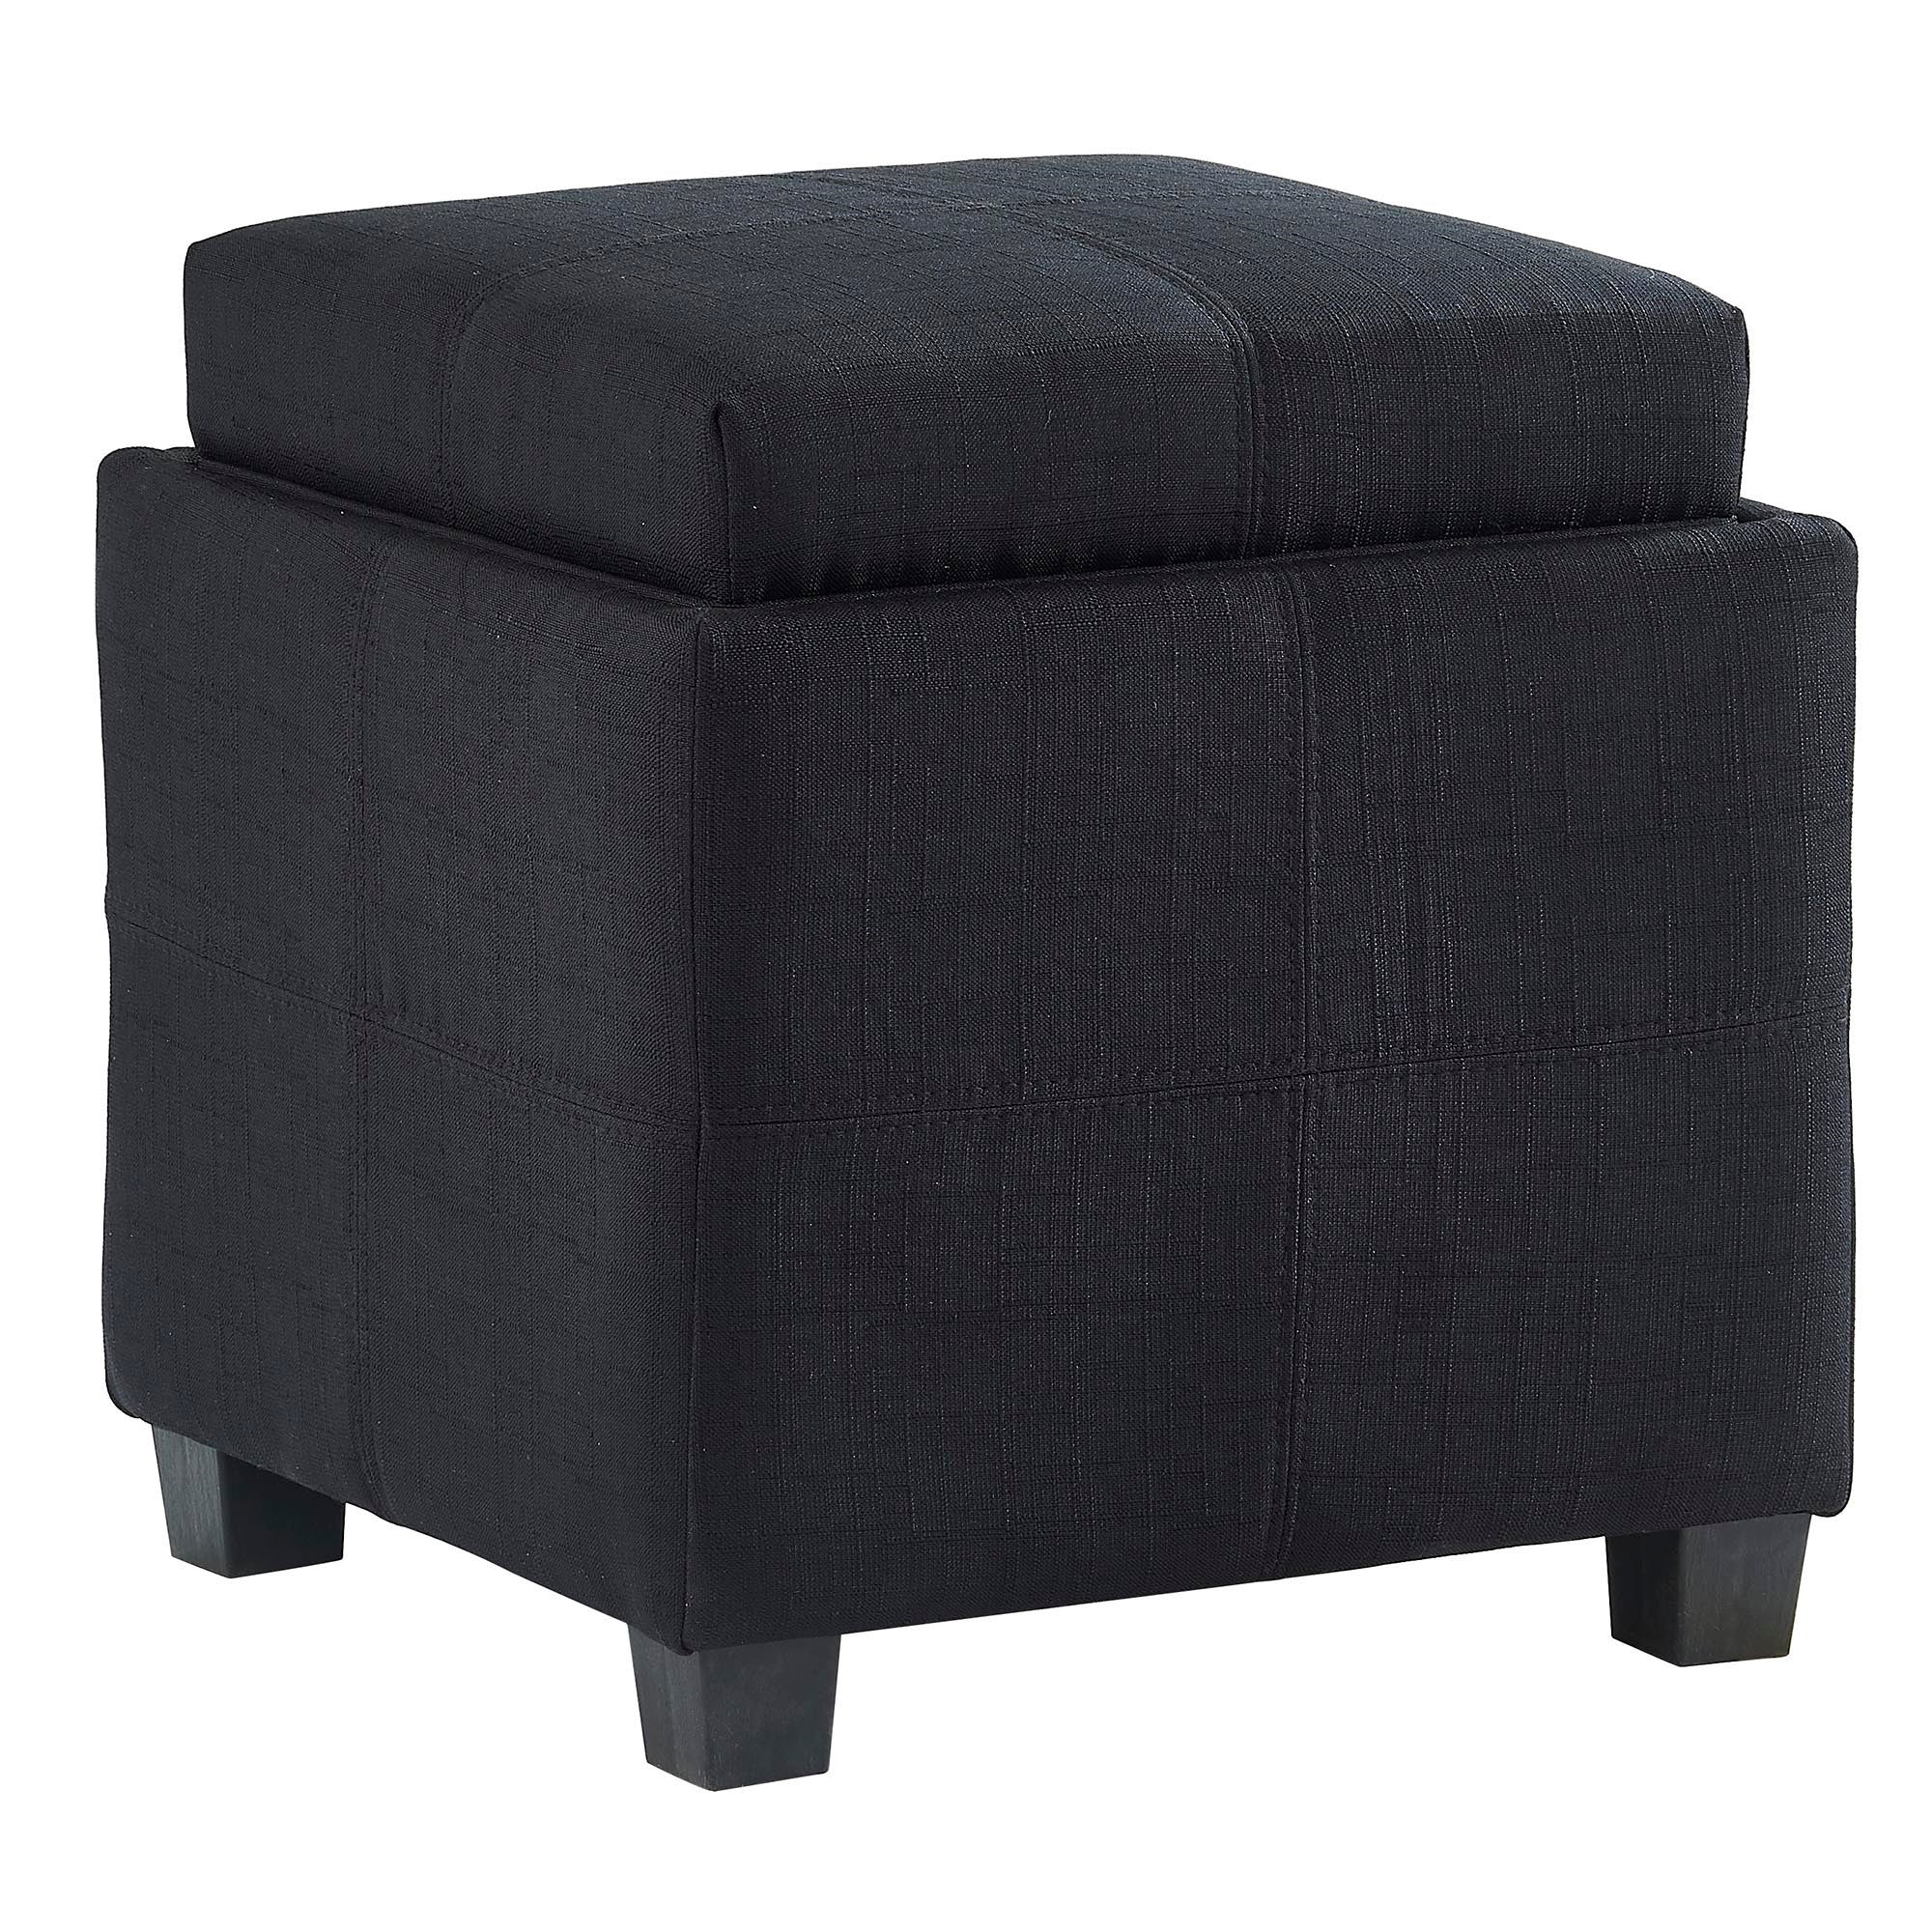 Luxy Square Storage Ottoman - Black